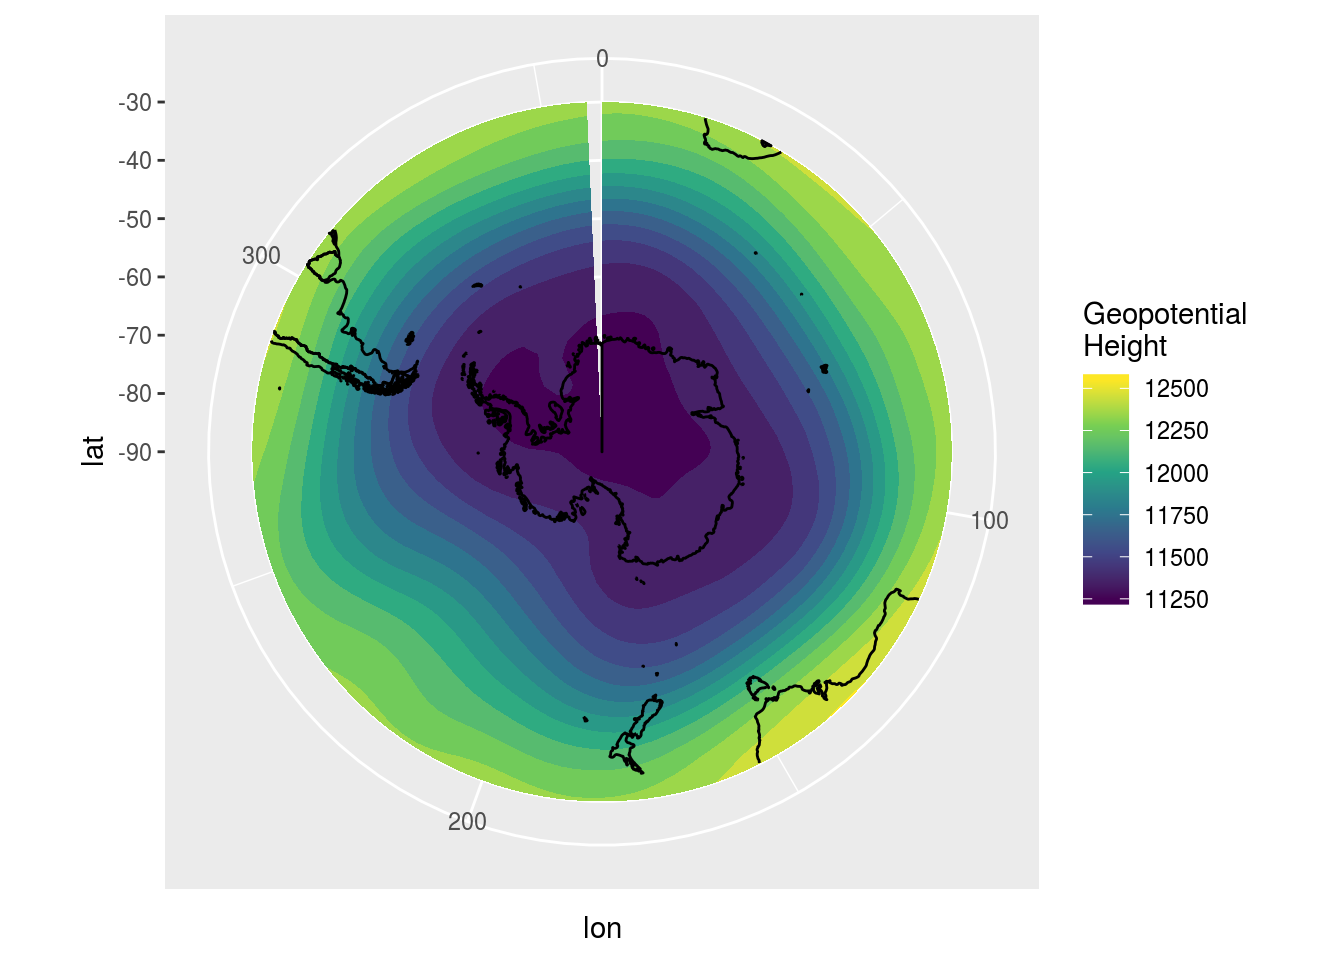 Wrapping Around Ggplot2 With Ggperiodic